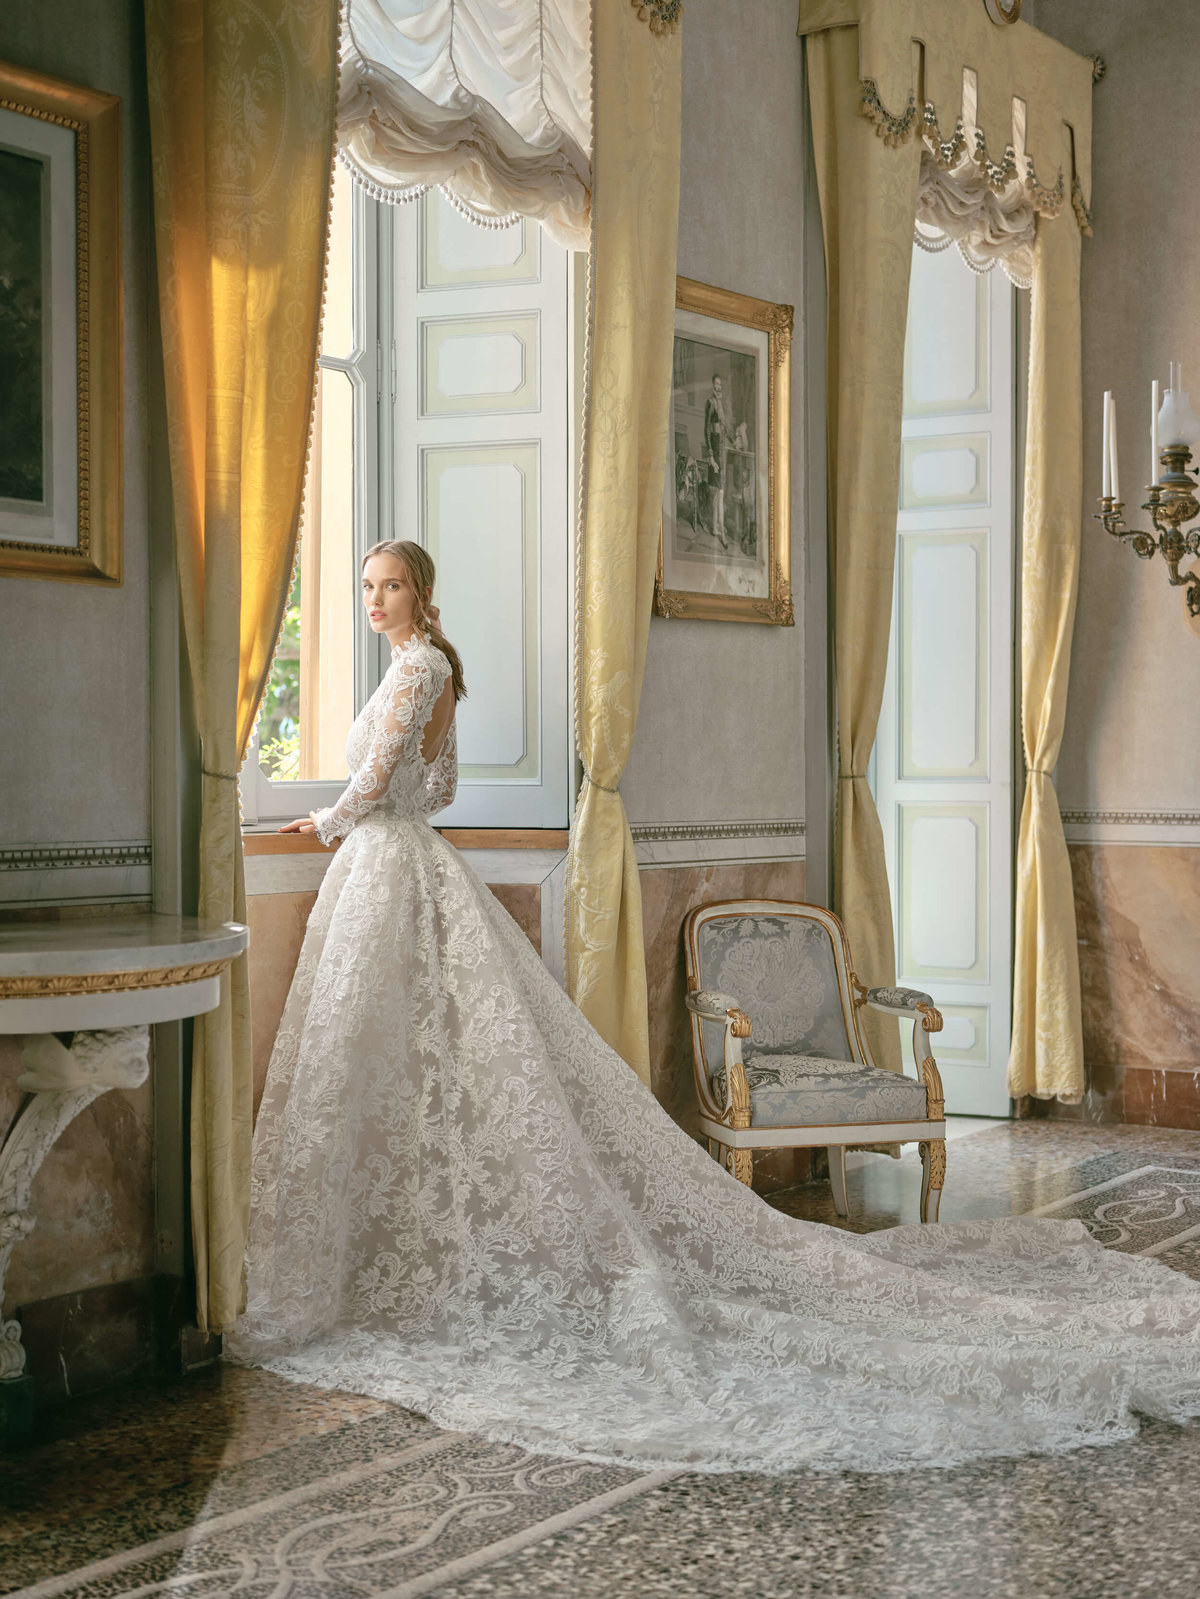 18-KTMerry-MoniqueLhuillier-Fall2020-Bridal-Look10-Emilia